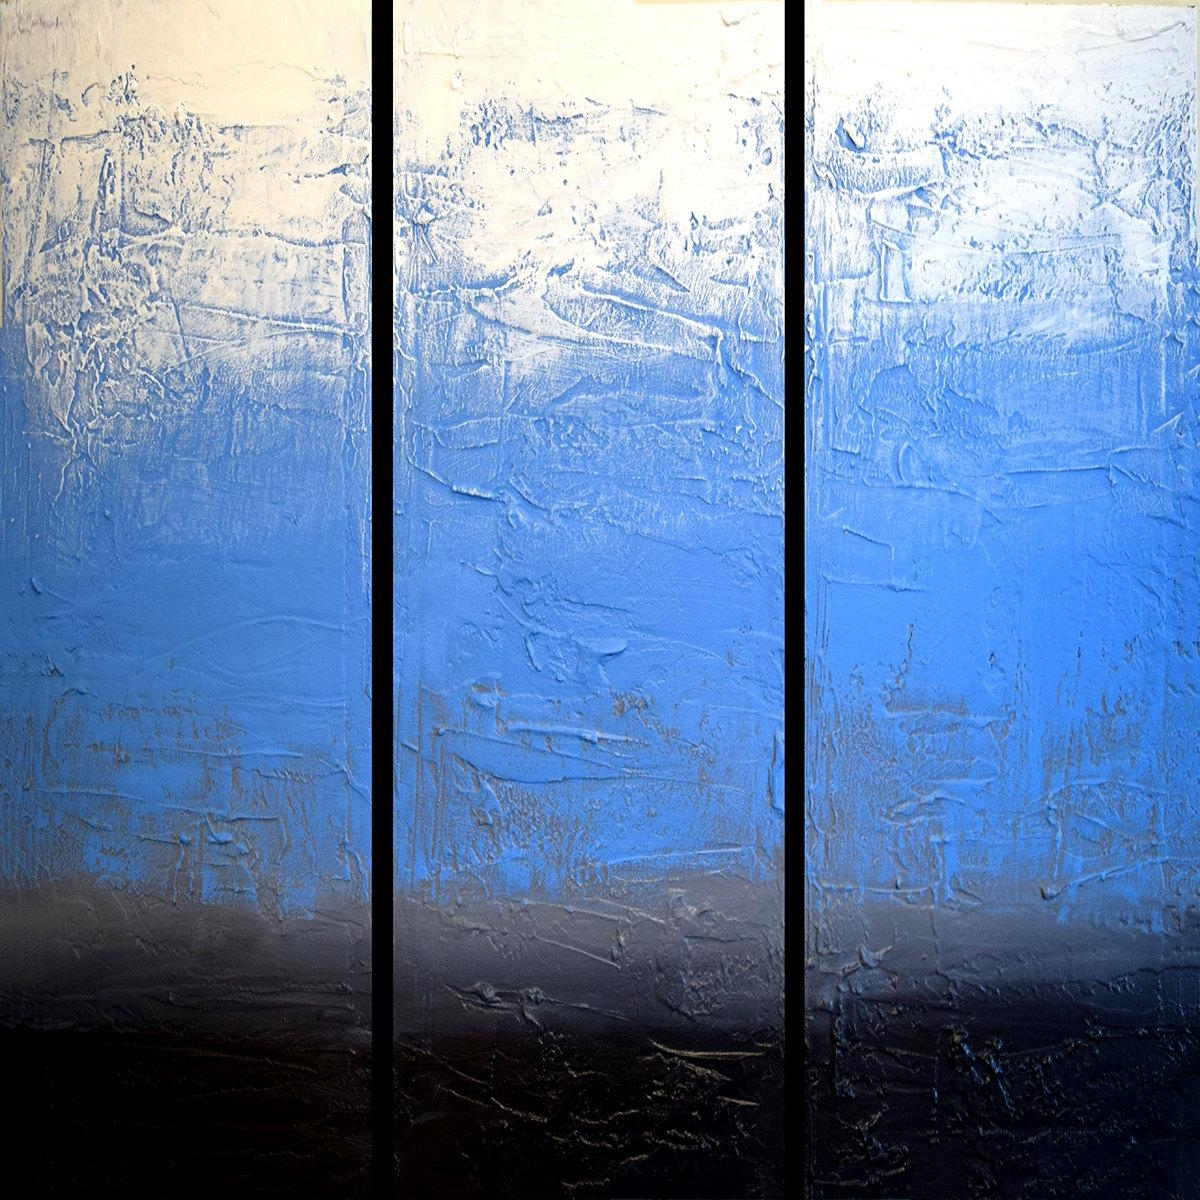 Extra Large Wall Sculpture Art Triptych 3 Panel Wall Art Inside Large Triptych Wall Art (Image 5 of 20)